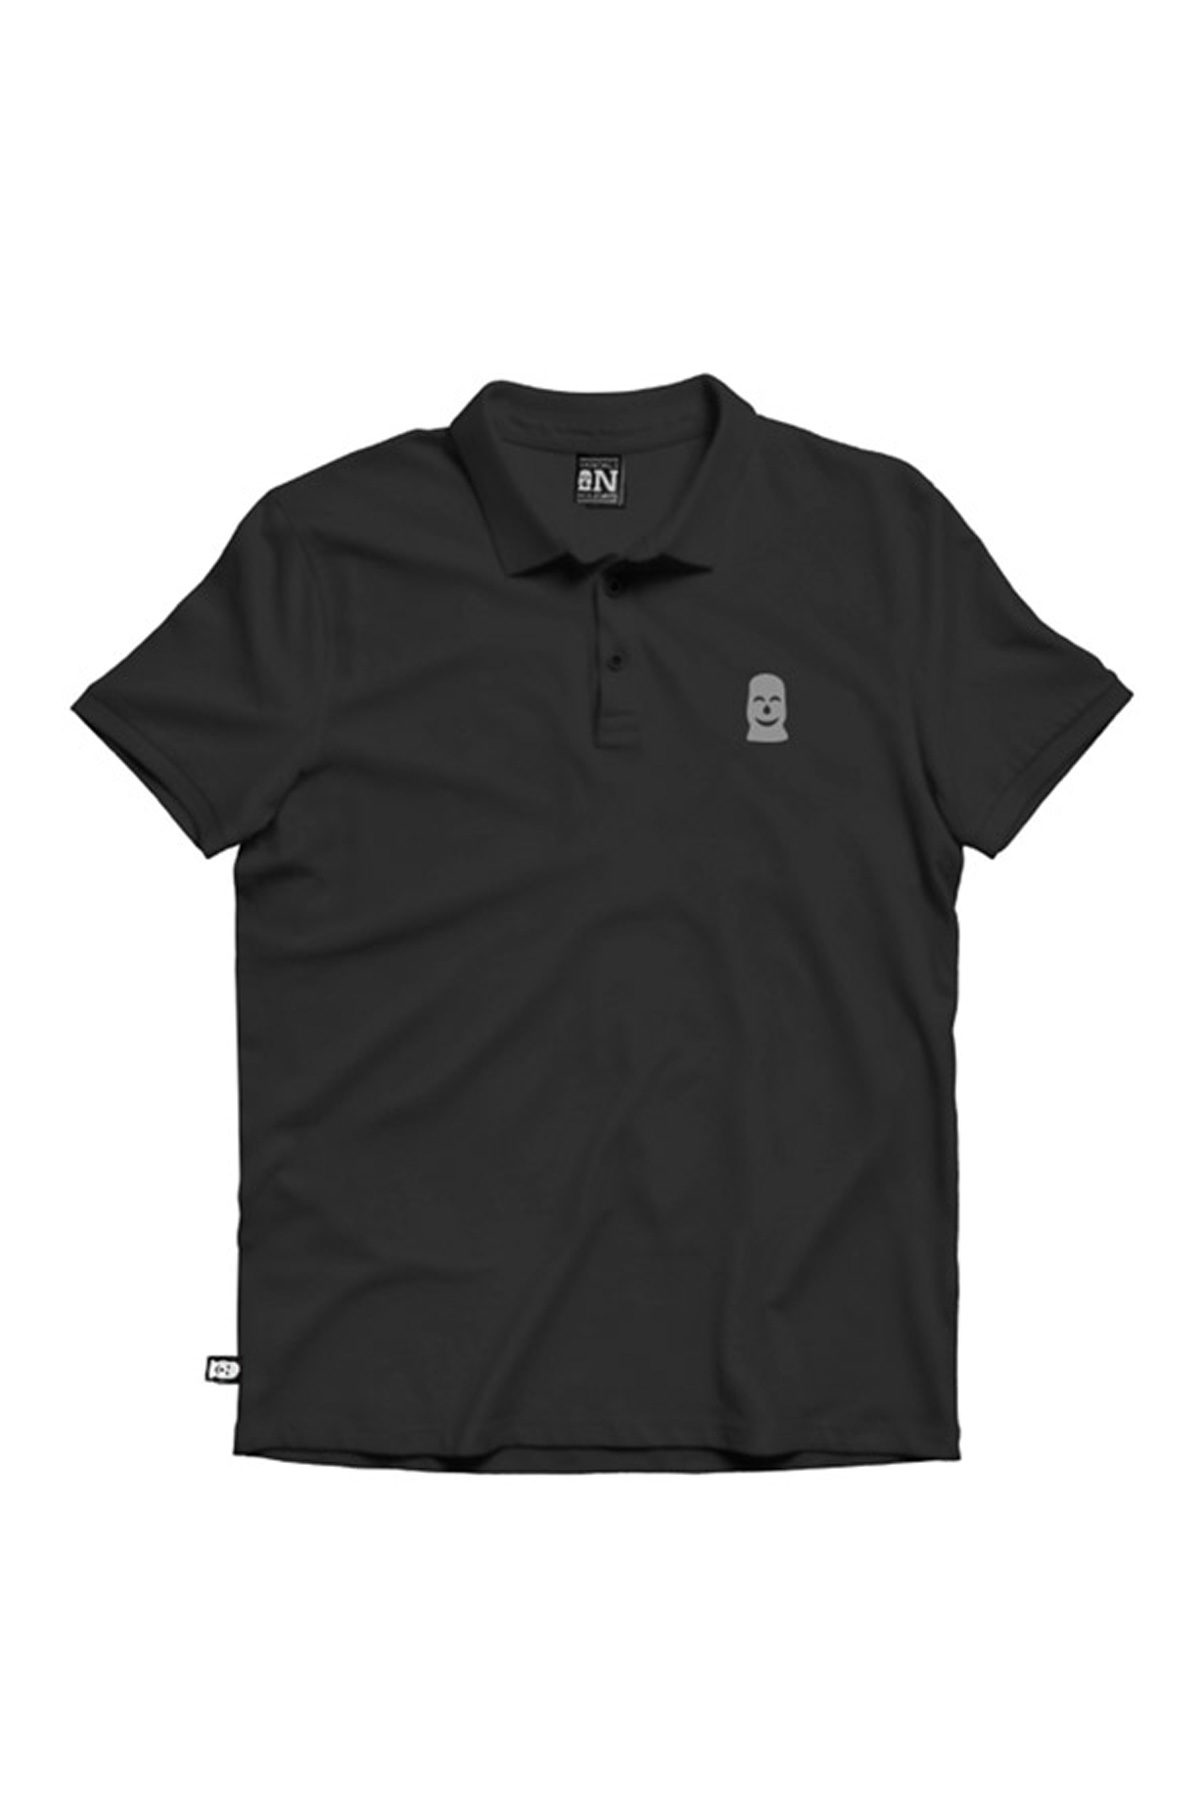 Vandals On Holidays GREY MASK POLO Black T-Shirt